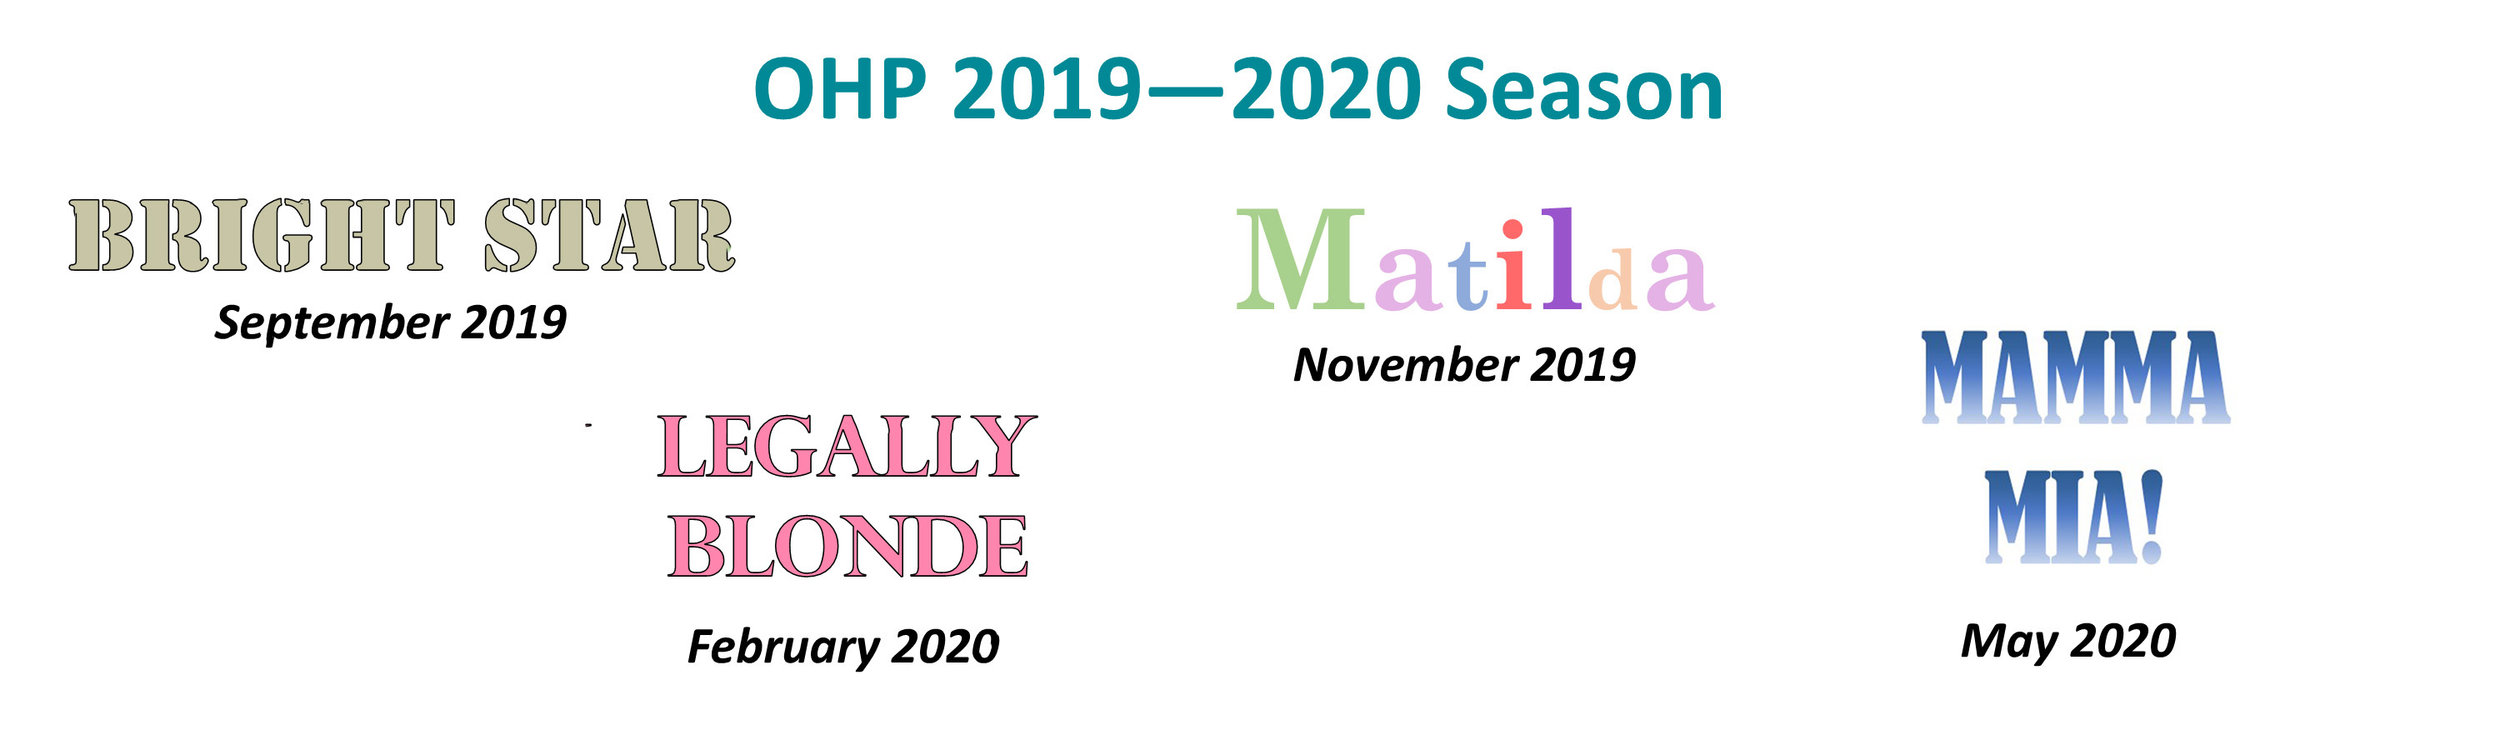 2019-2020 Season Announcement 08_19.jpeg